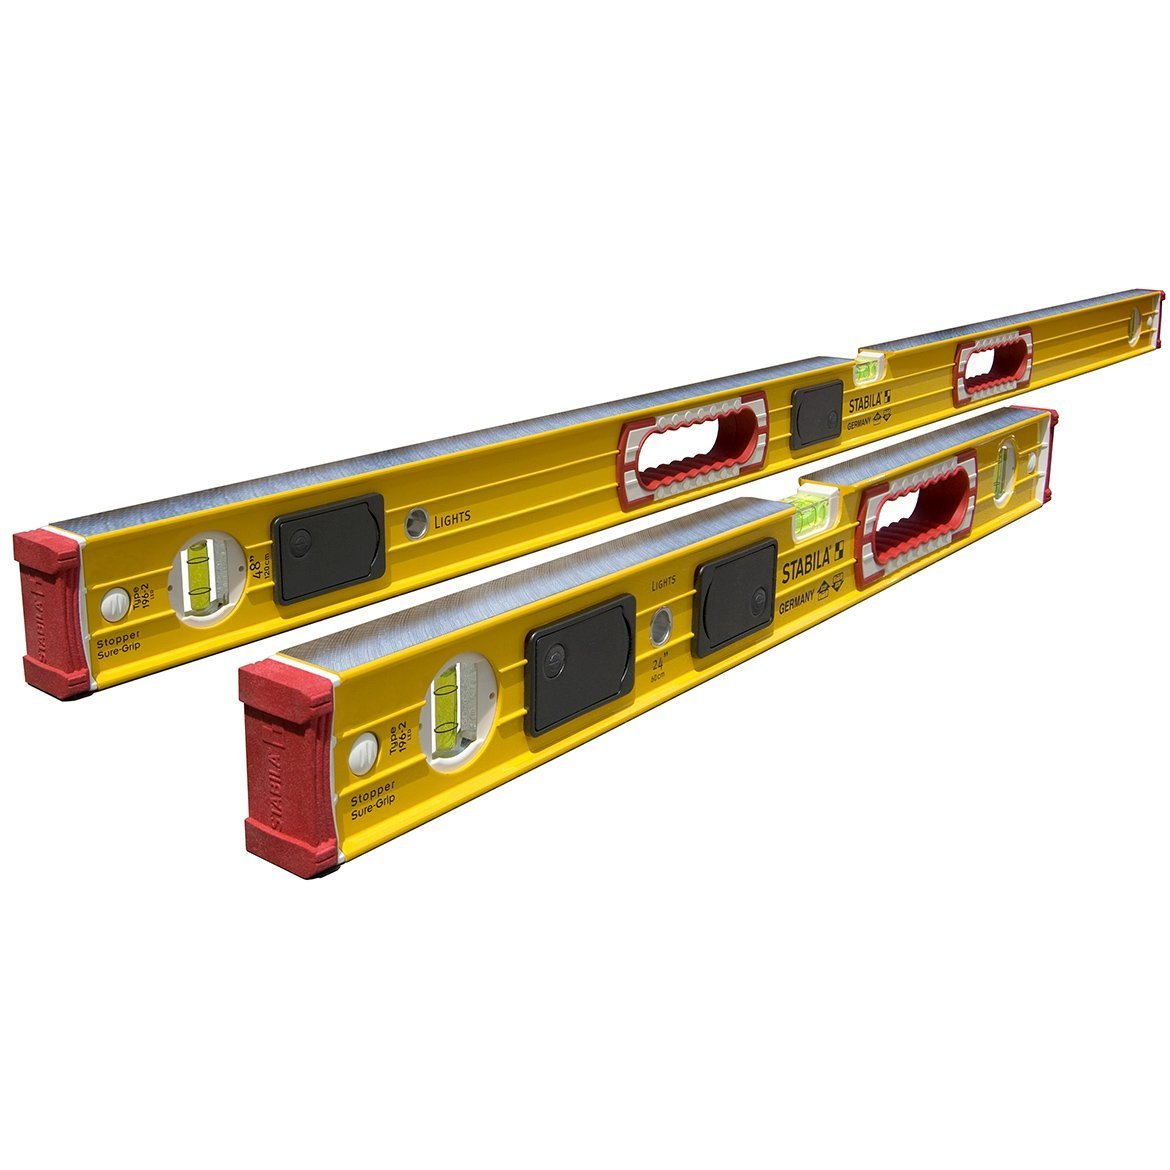 Stabila Level Set Kit Type 196-2 LED 48'' and 24'' Levels with Lighted Vials by Stabila (Image #1)